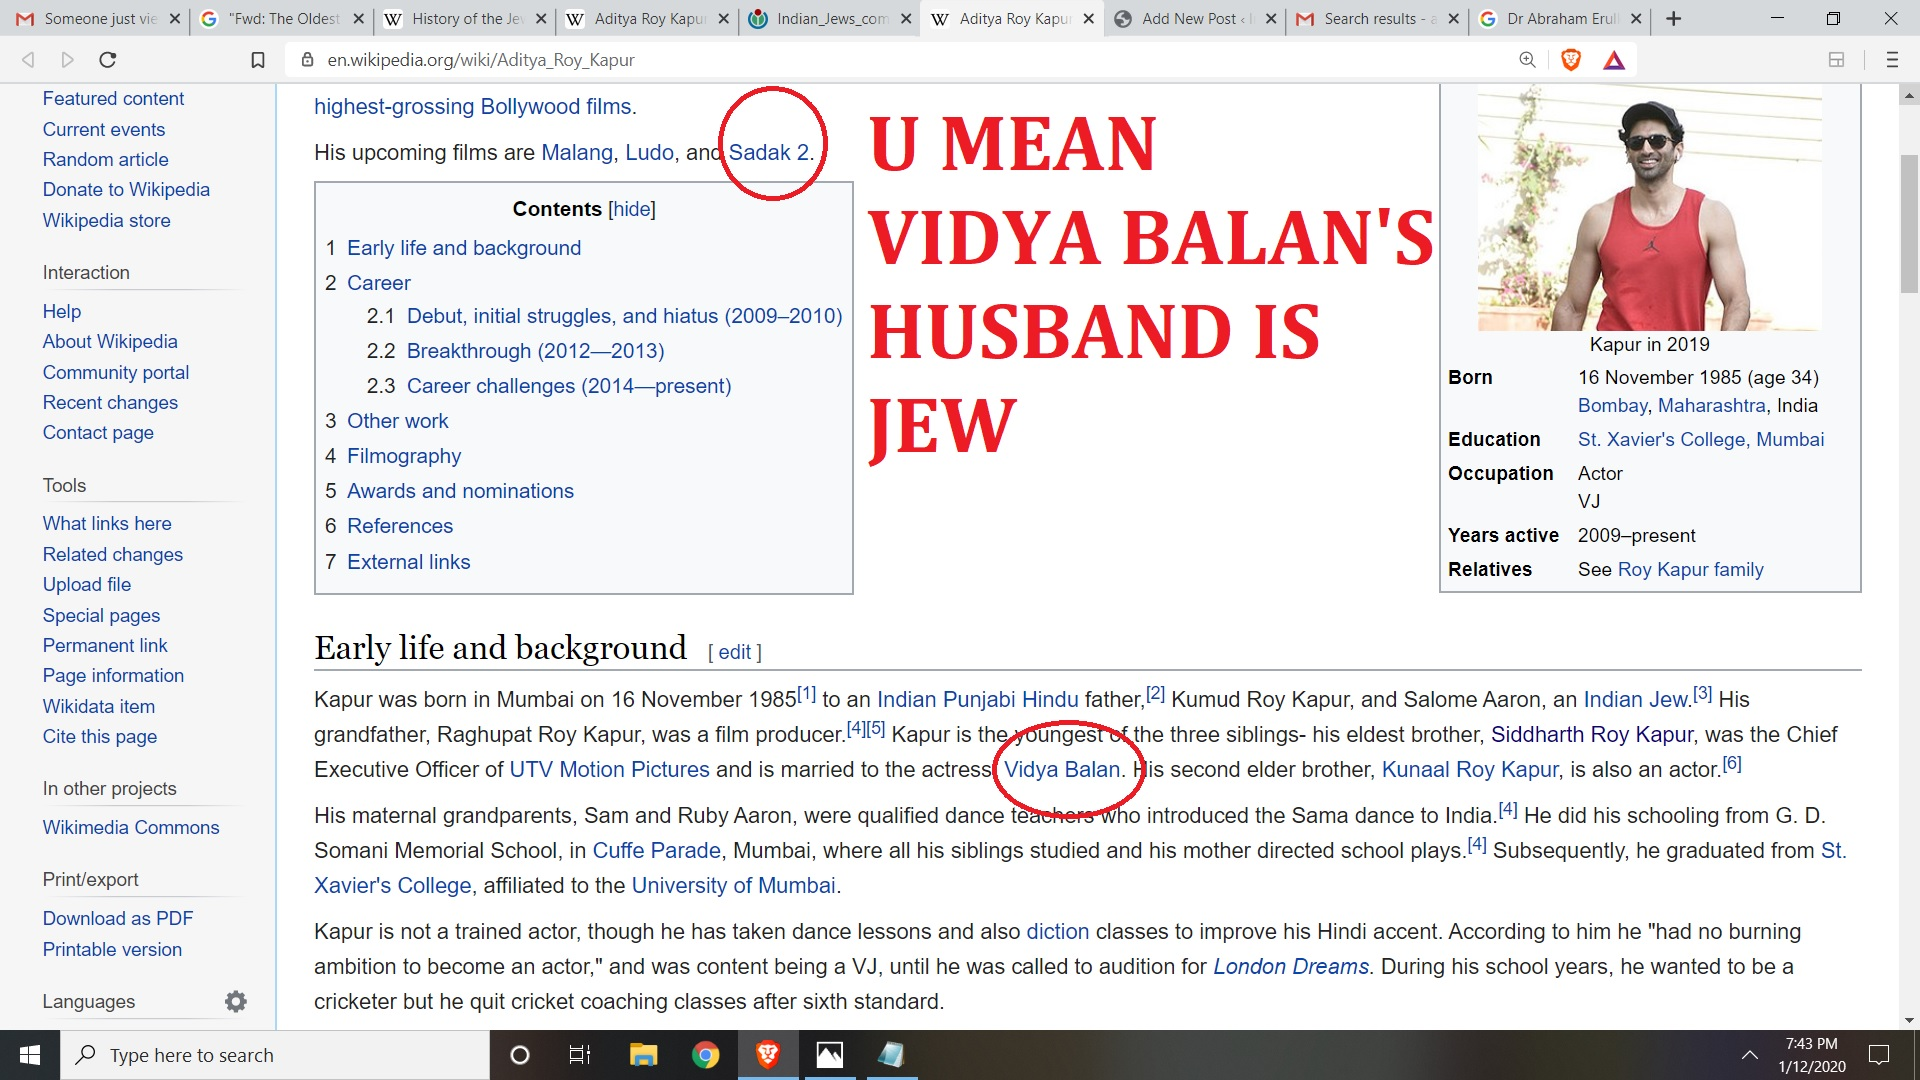 U MEAN VIDYA BALAN'S HUSBAND IS JEW